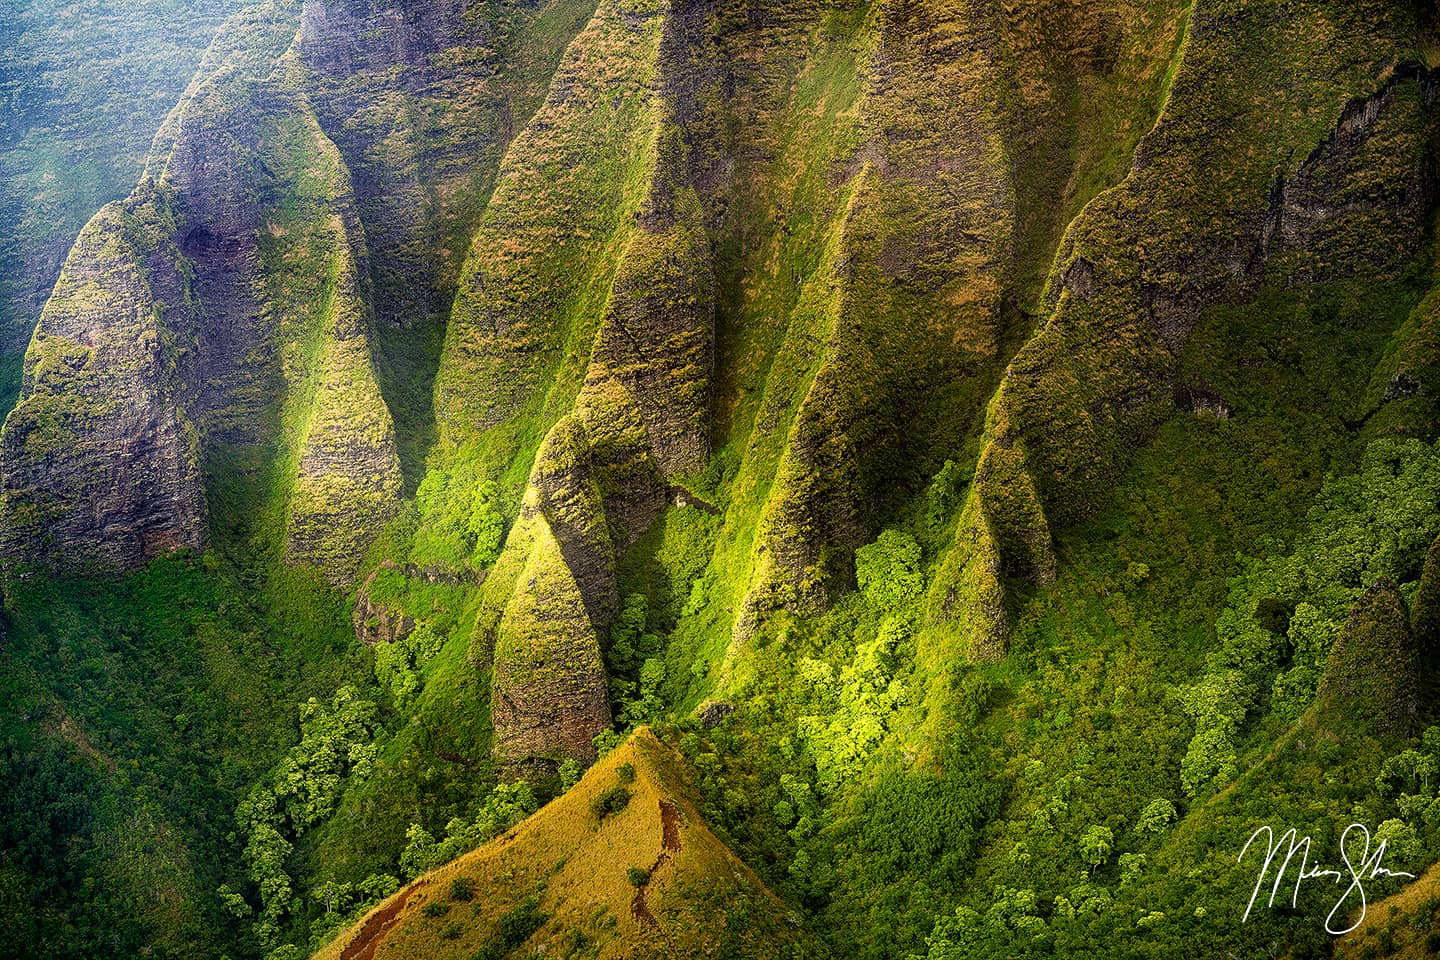 Lights on the Cliffs of the Napali Coast - Kalalau Valley Lookout, Kokee State Park, Kauai, Hawaii